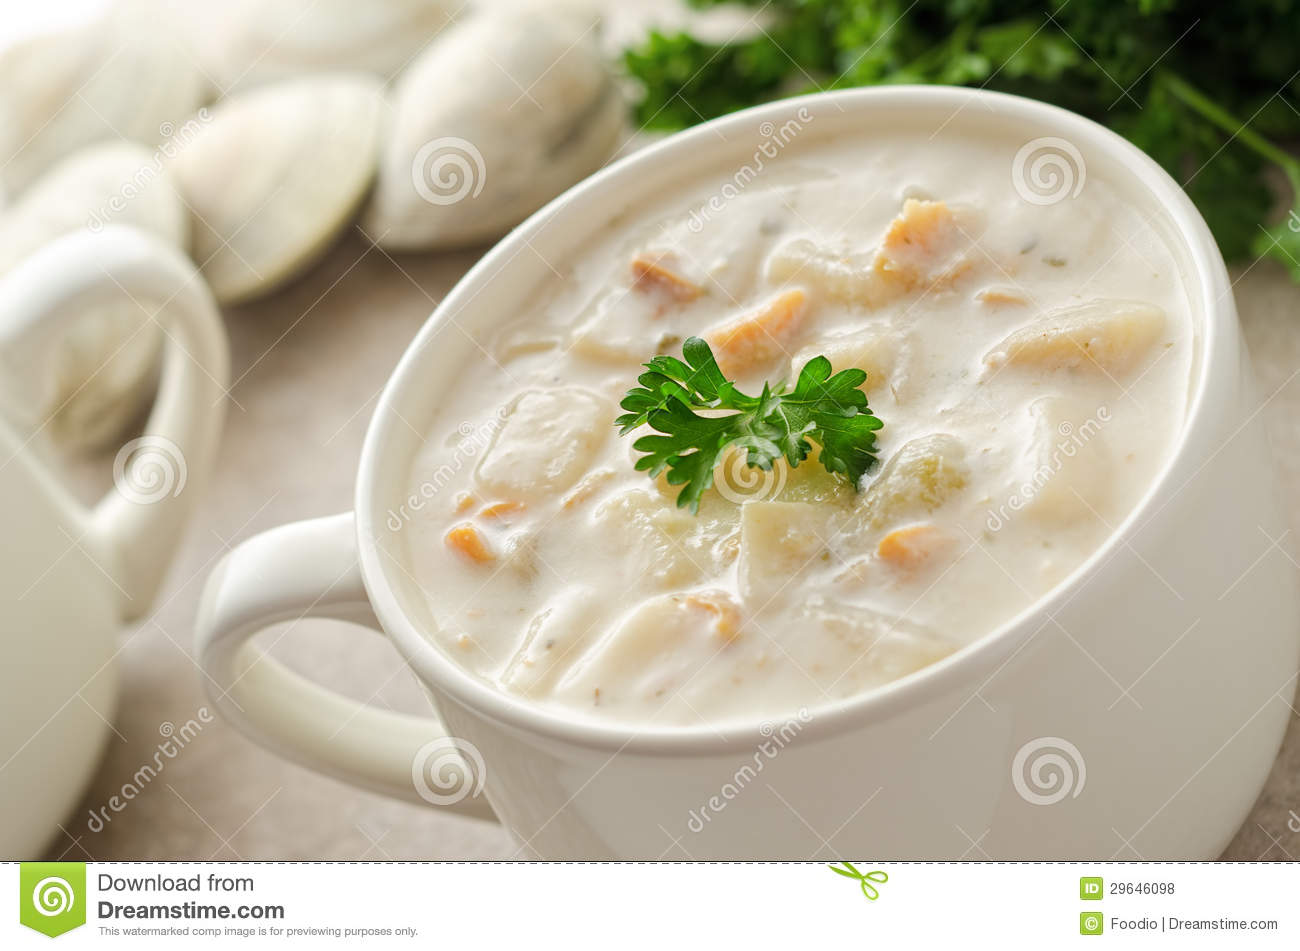 New England Clam Chowder Royalty Free Stock Photos - Image: 29646098